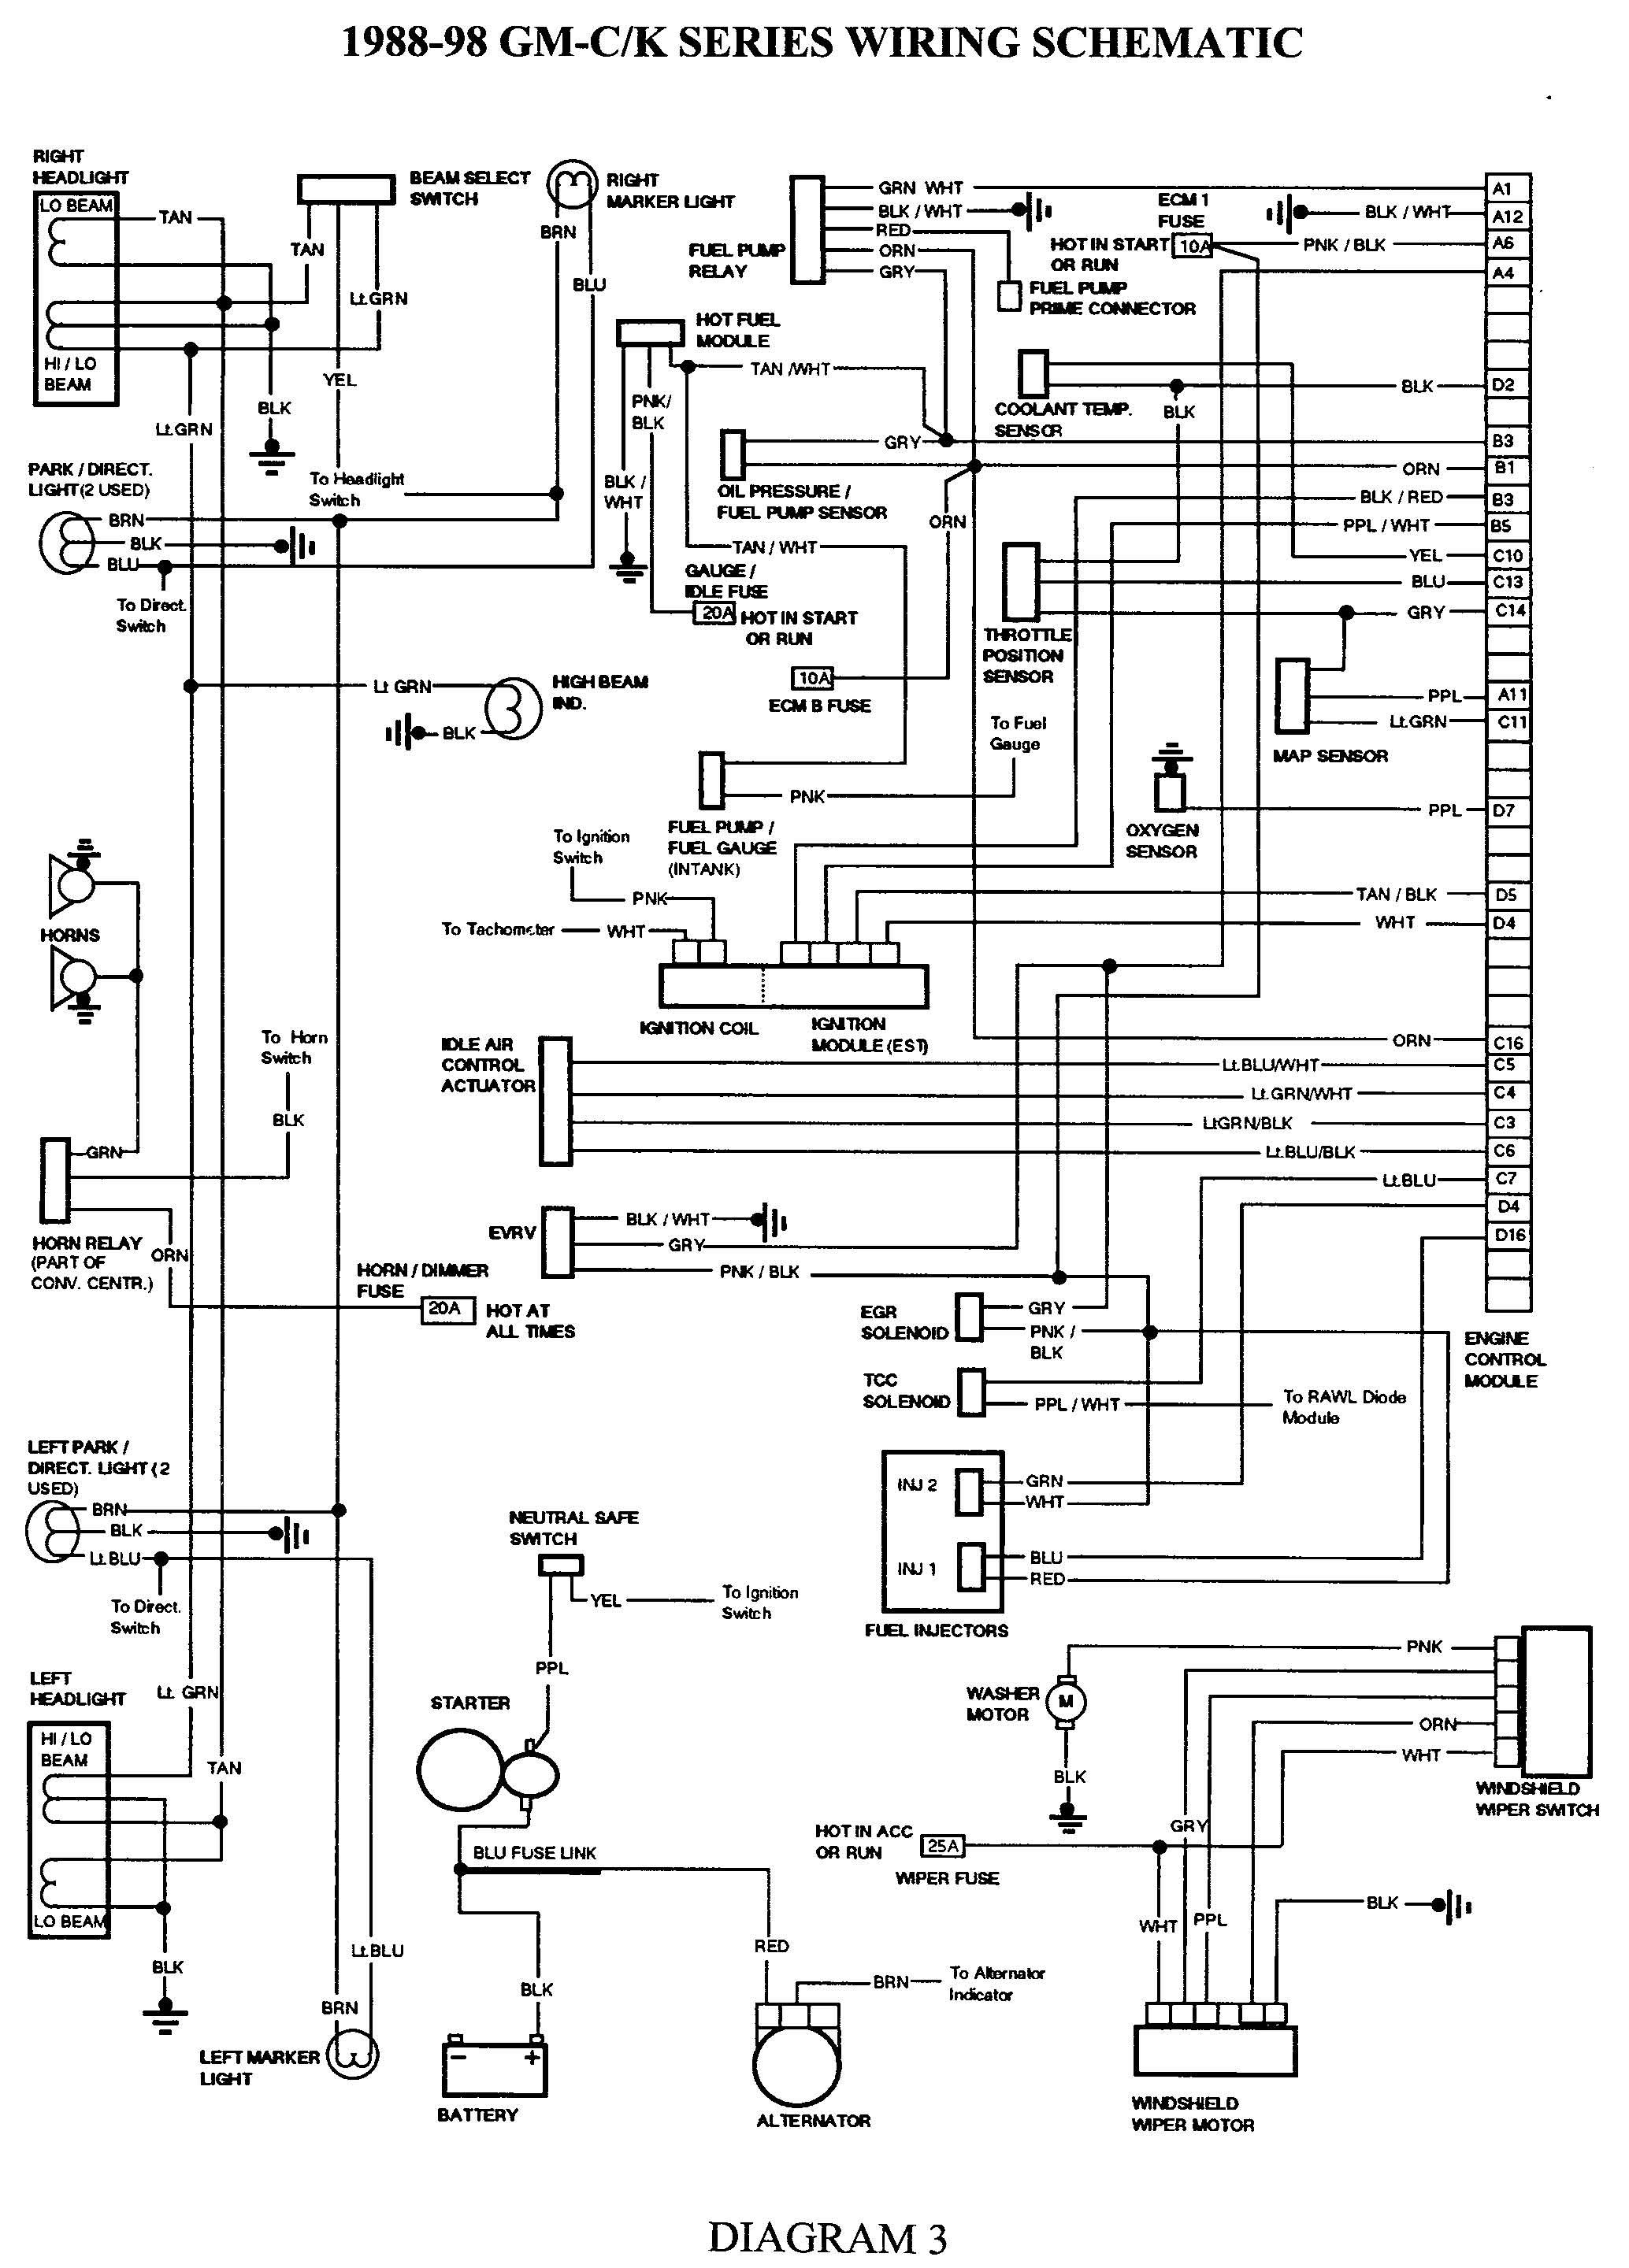 b2f2e5dbdc07dada83ef514f6d4ce3d4 wiring diagram for 1998 chevy silverado google search 98 chevy Chevy Truck Wiring Harness Diagram at pacquiaovsvargaslive.co